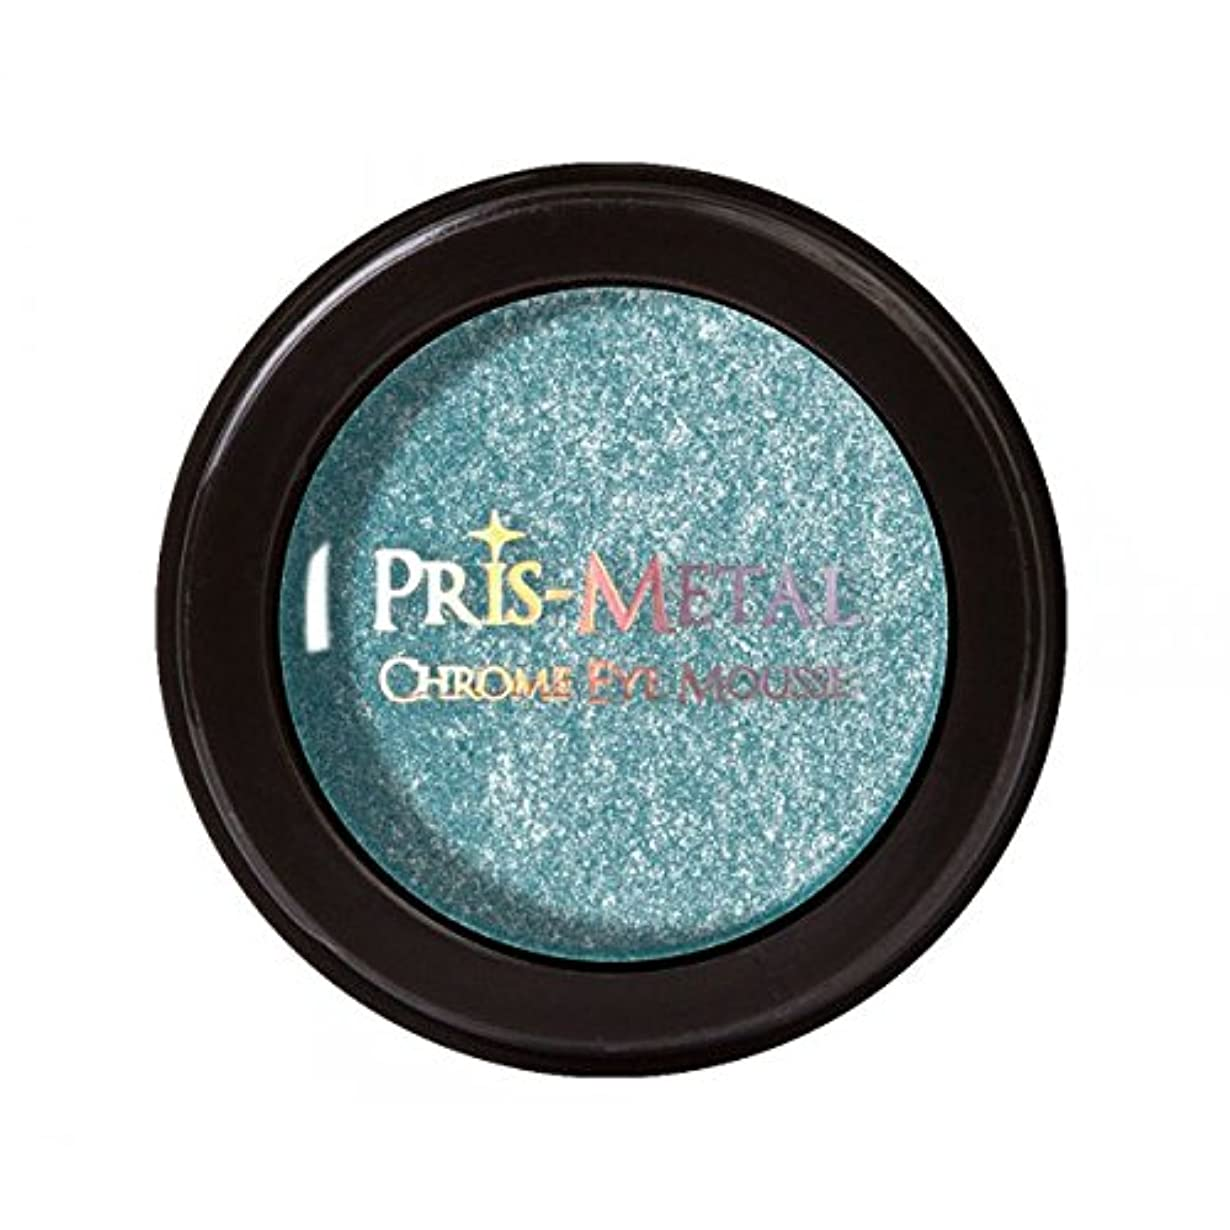 言うまでもなくリー疑問に思う(6 Pack) J. CAT BEAUTY Pris-Metal Chrome Eye Mousse - Below Zero (並行輸入品)